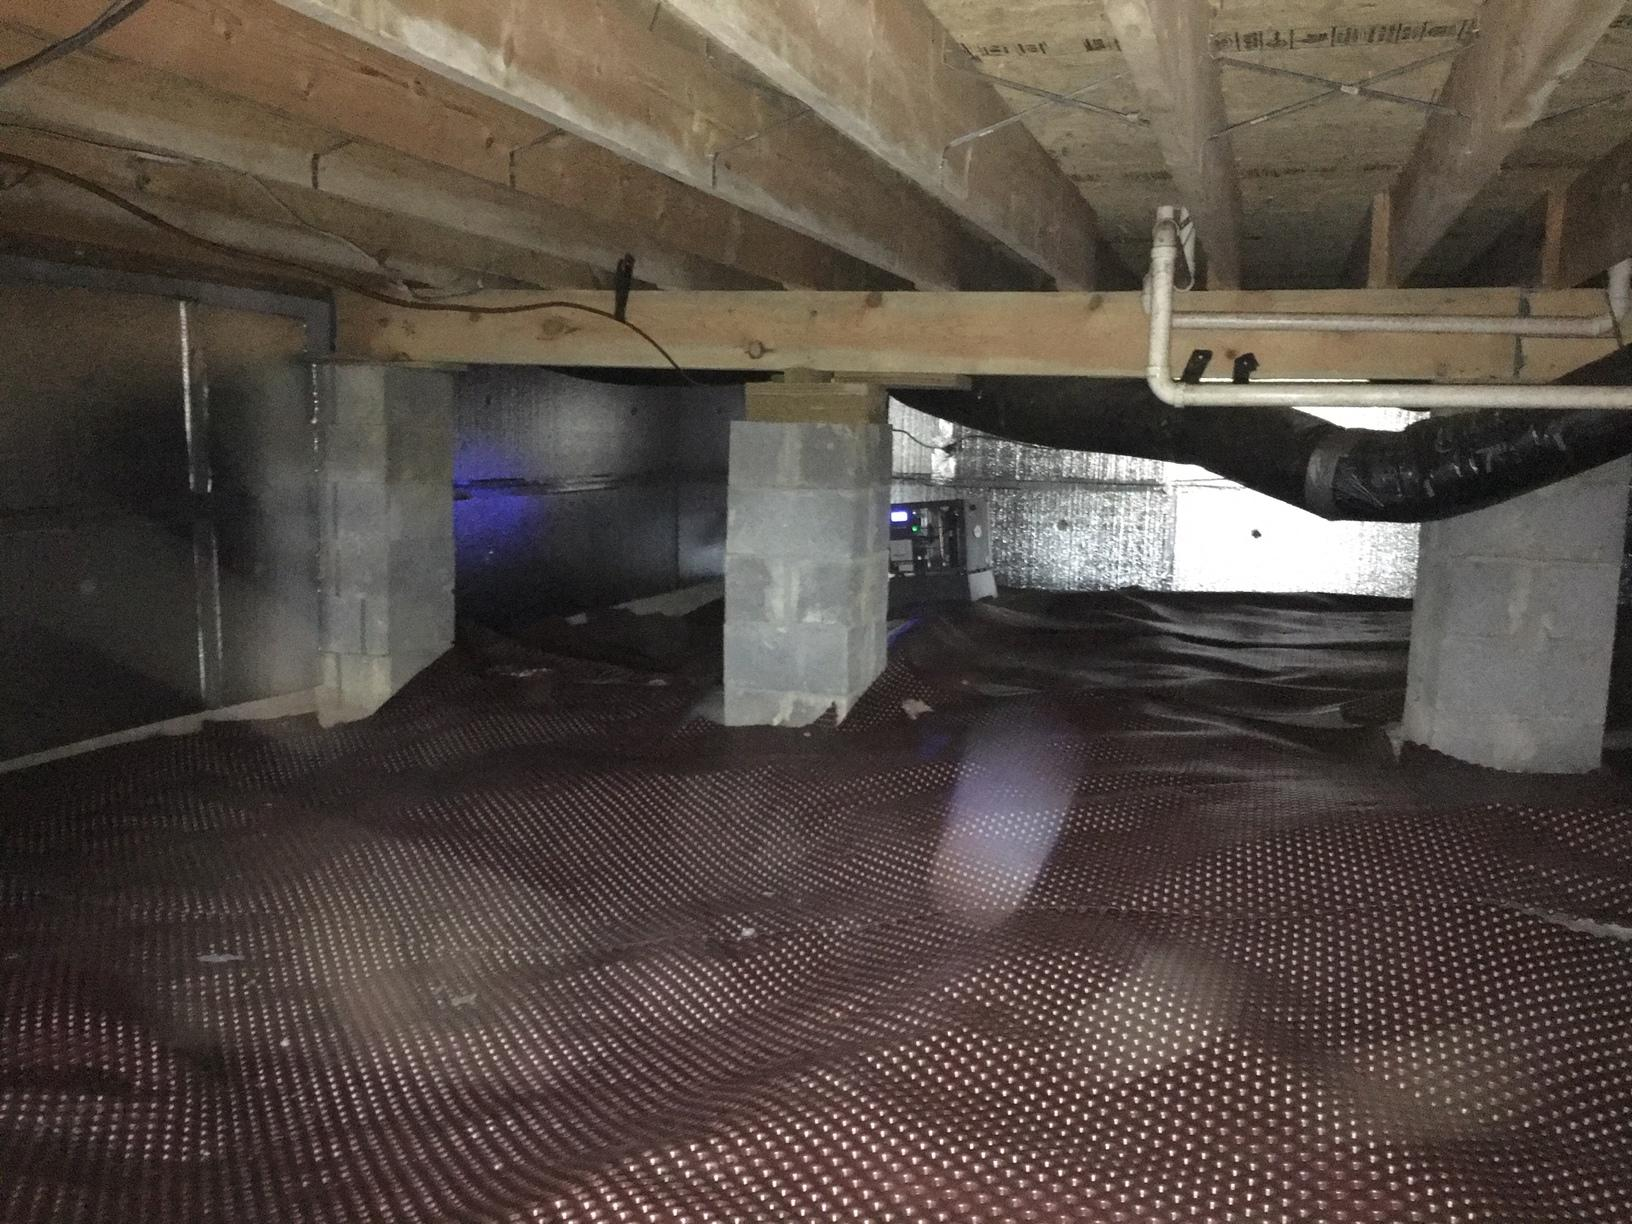 Drainage Matting resolves water in a crawl space in Corbin, KY - After Photo